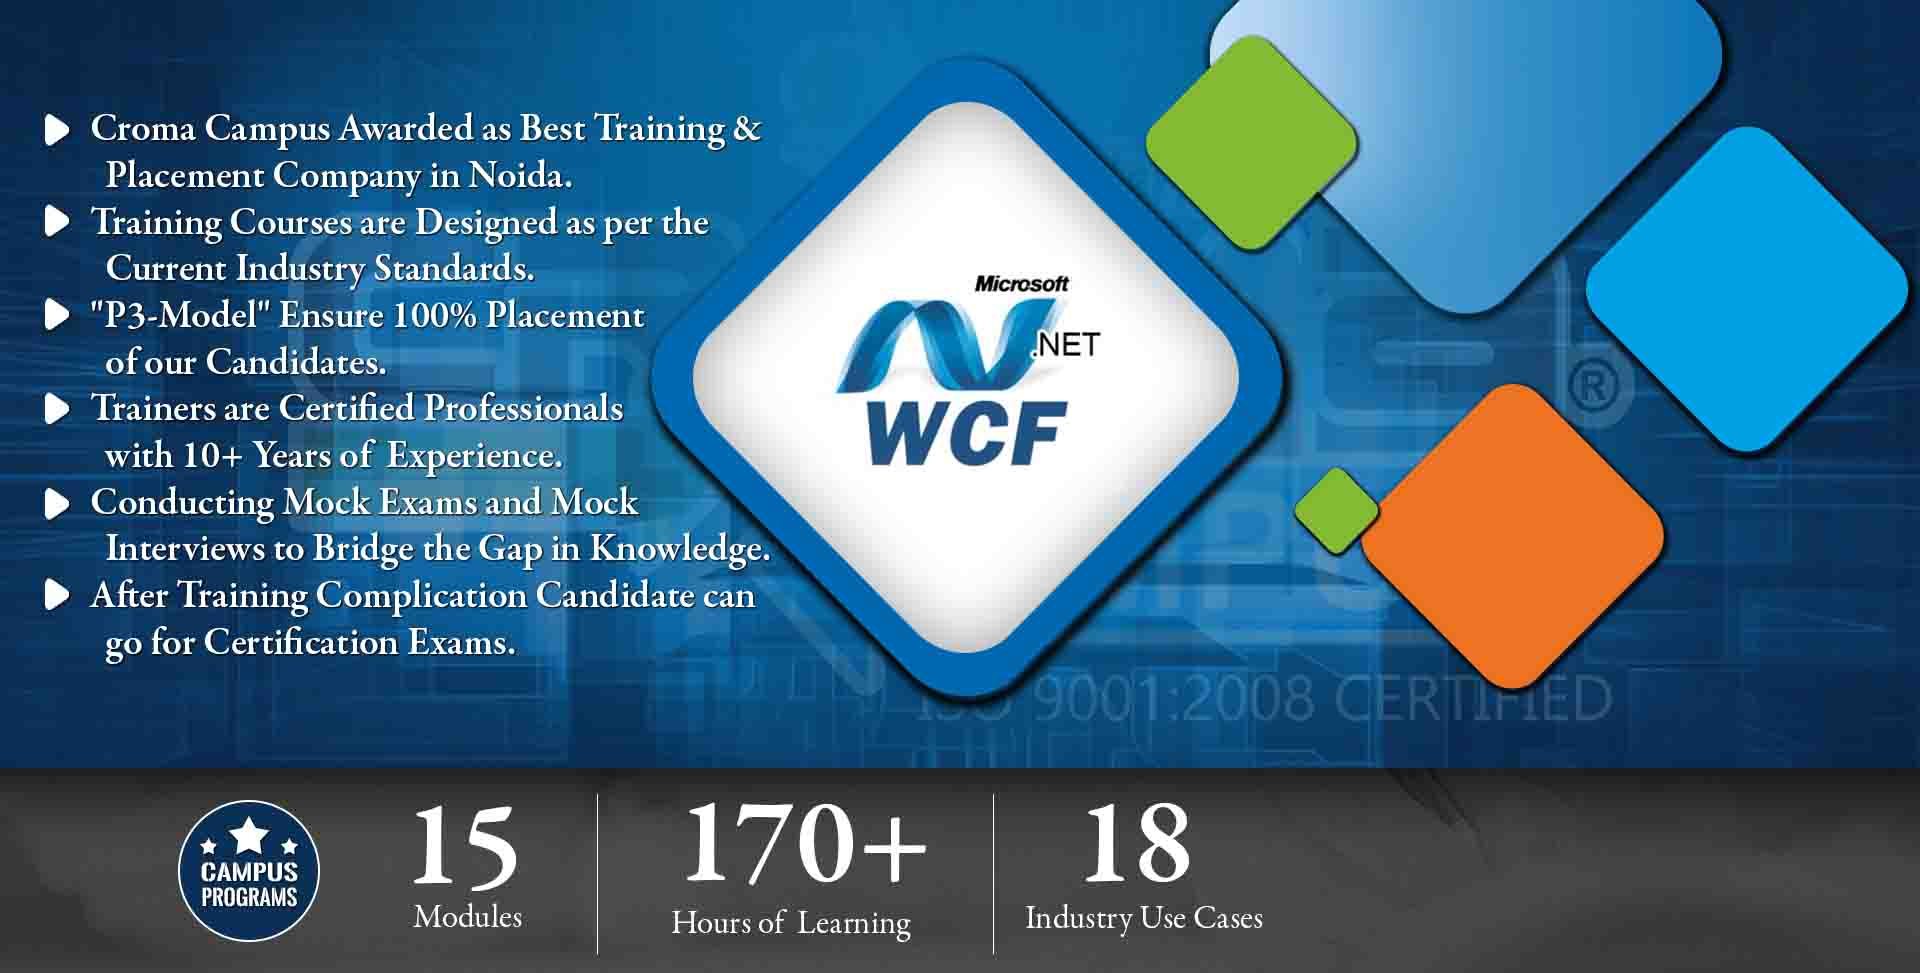 Dot Net with WCF Training in Noida- Croma Campus